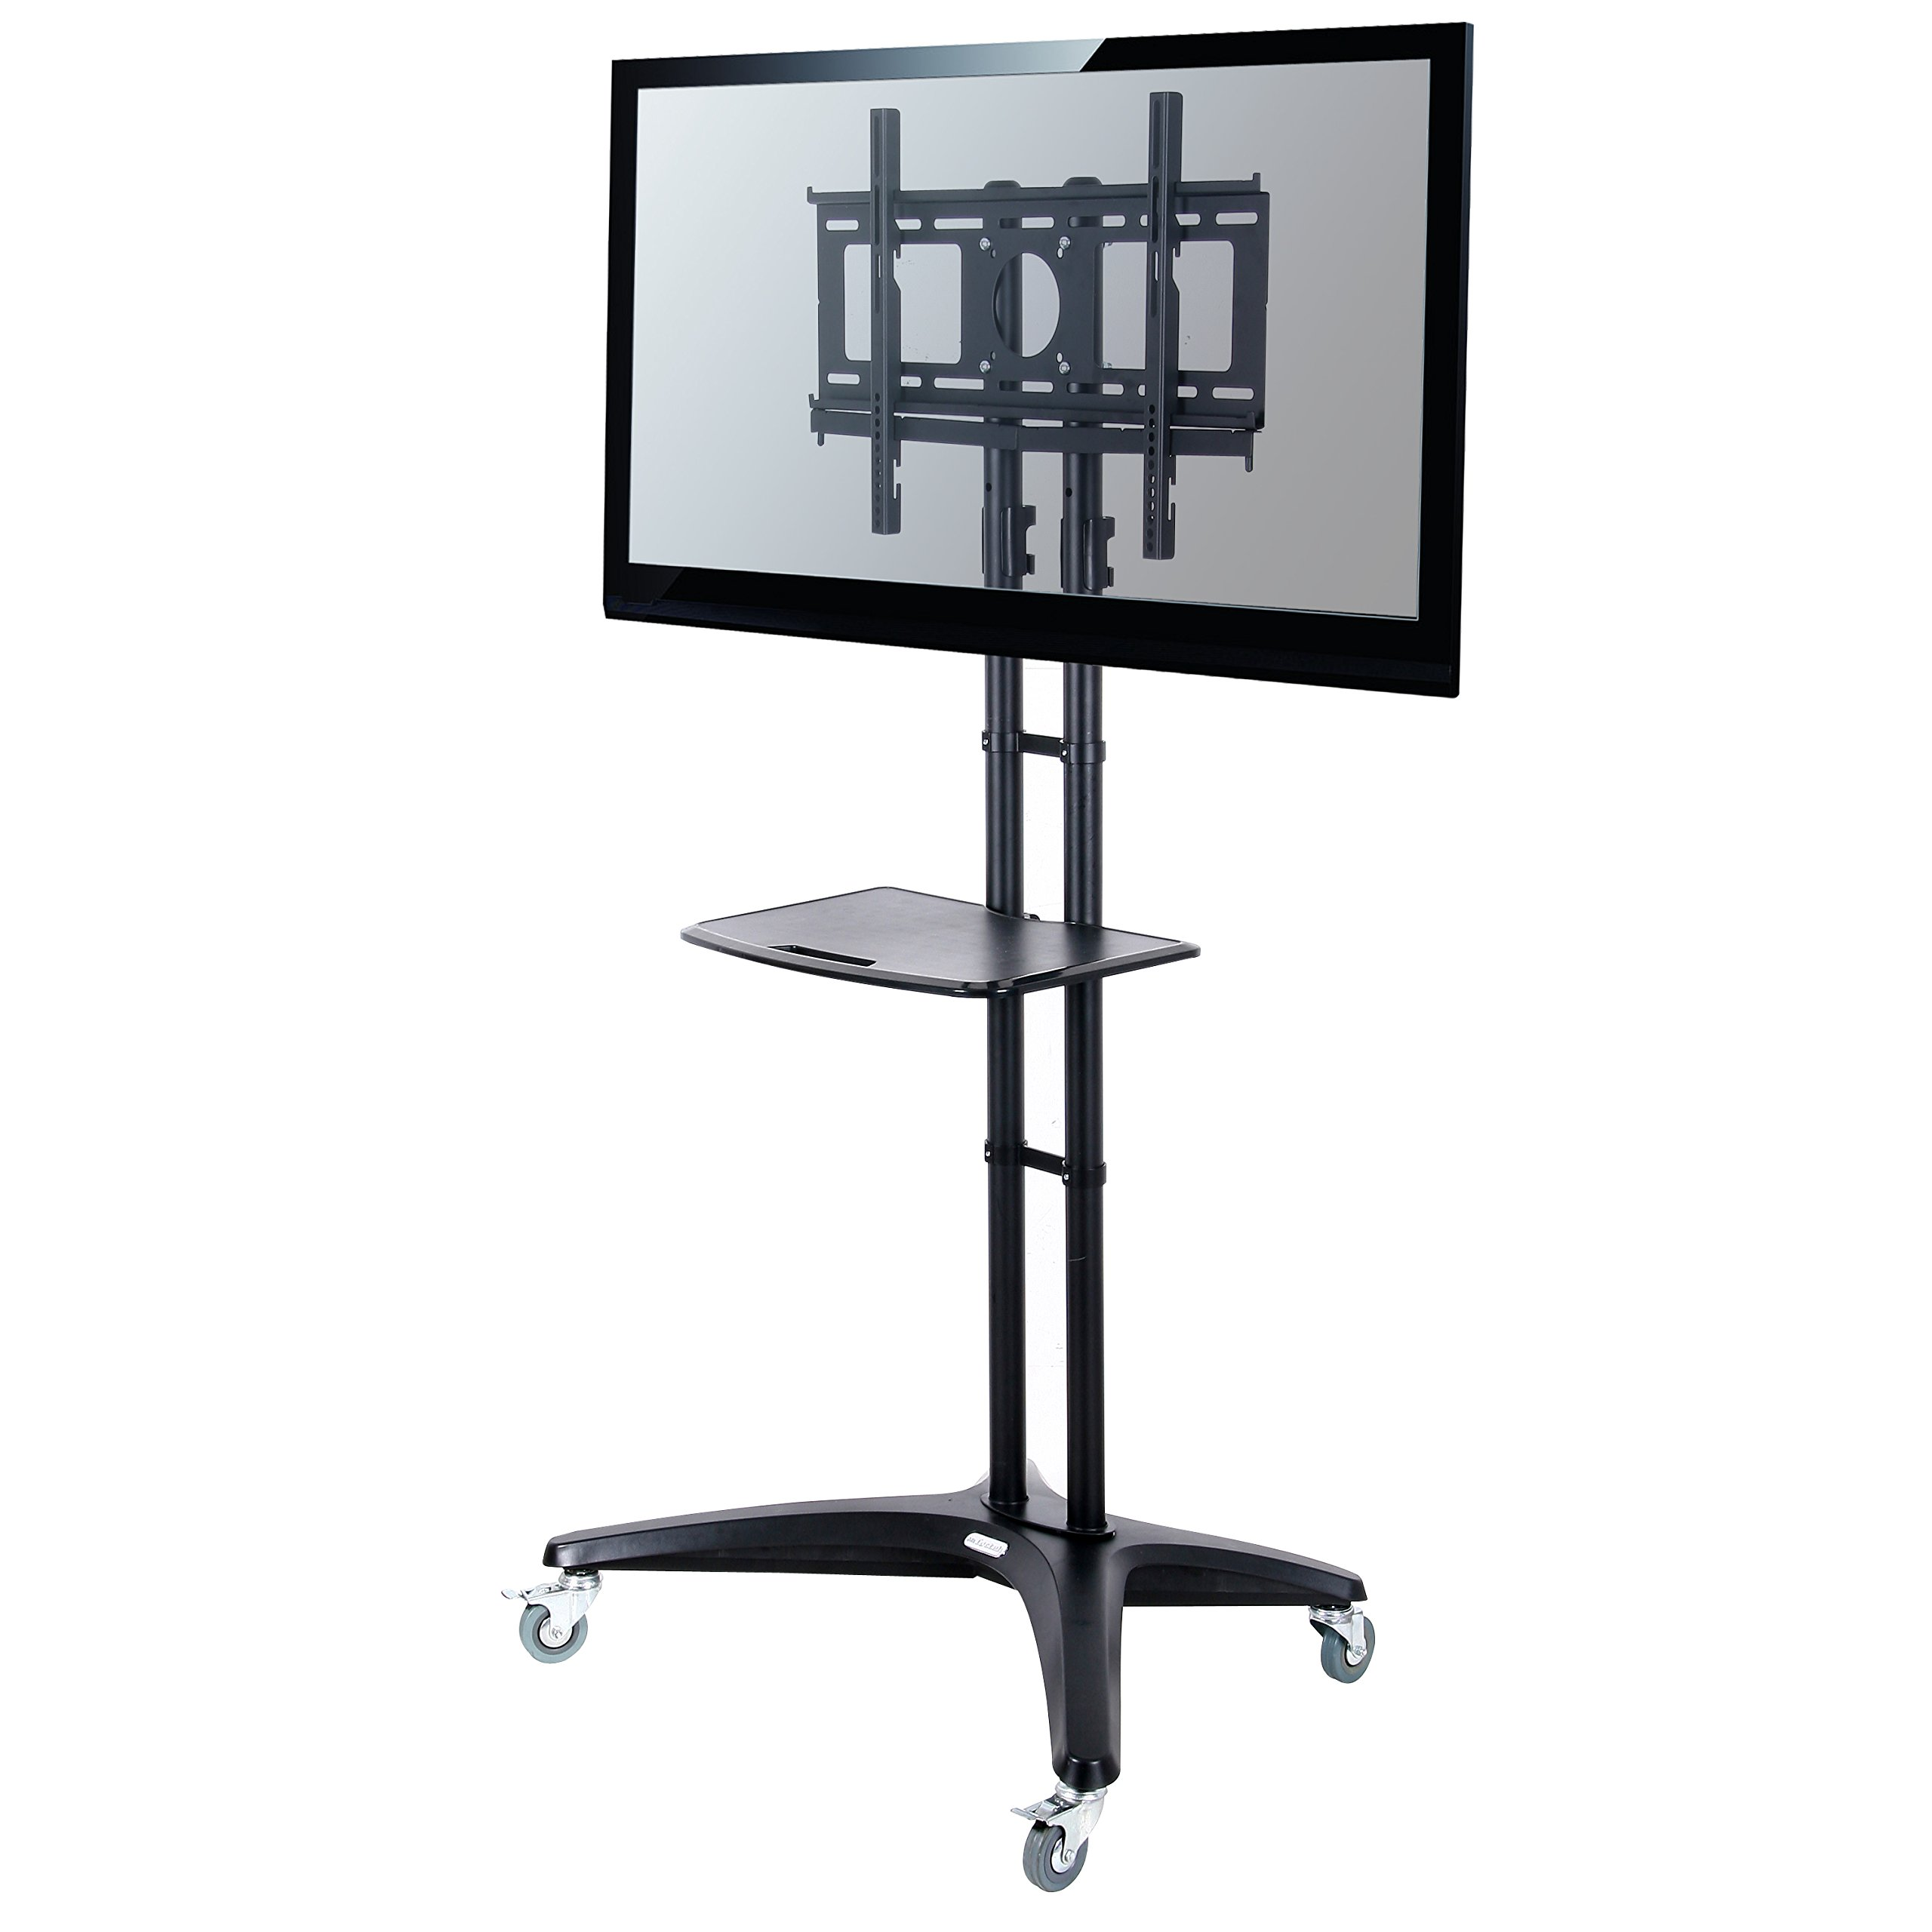 FLEXIMOUNTS C03 Rolling TV Cart LCD Stand for 32''-65'' LCD LED Plasma Flat Panel Screen LCD Computer Monitor Mount with DVD Shelf & Locking Caster Wheels (C03 32''-65'')